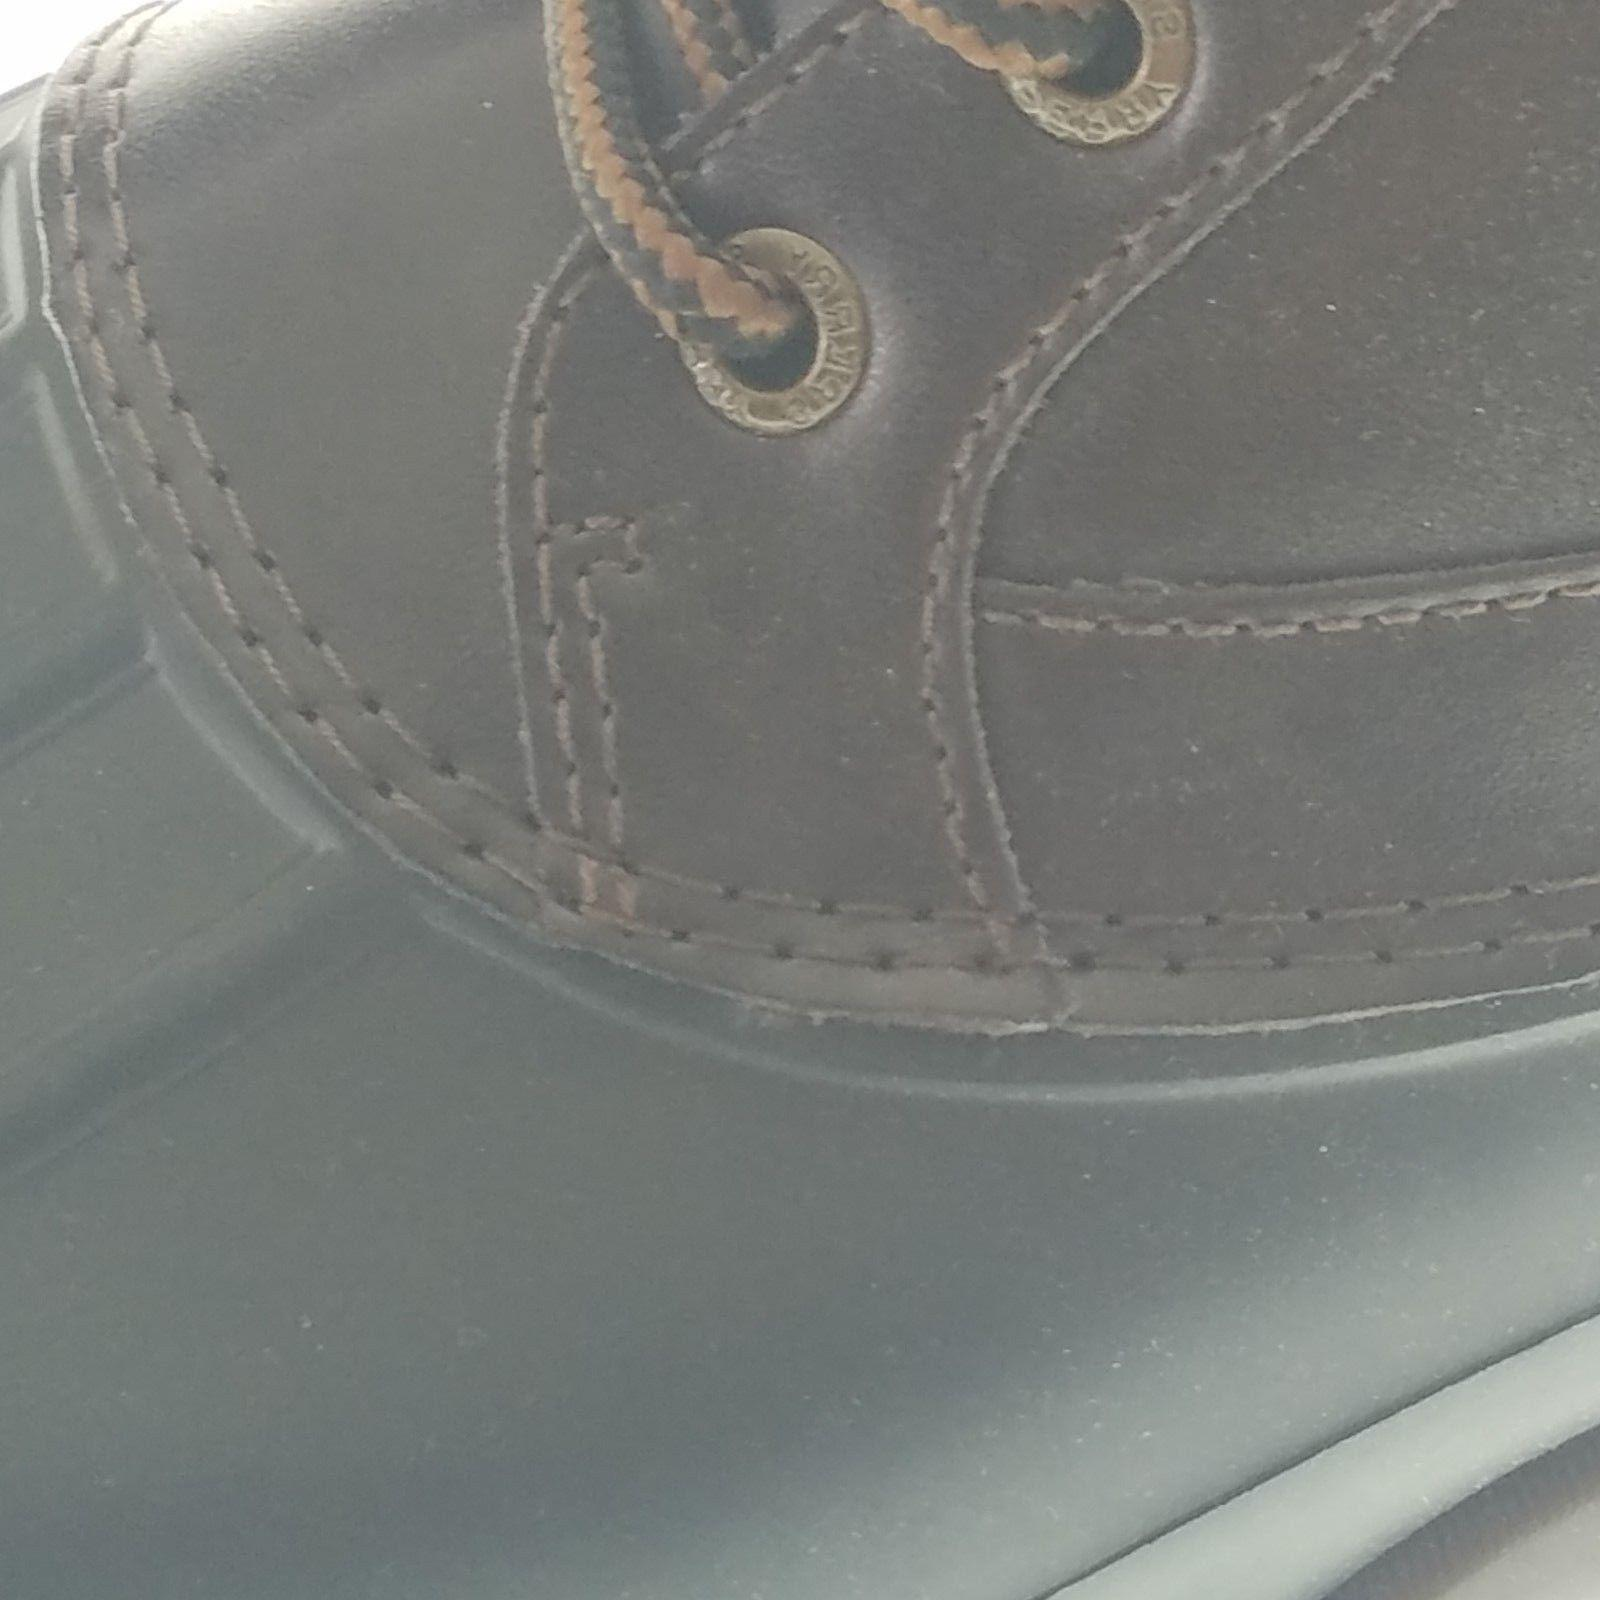 Sperry Top-Sider Duck - 8.0 M